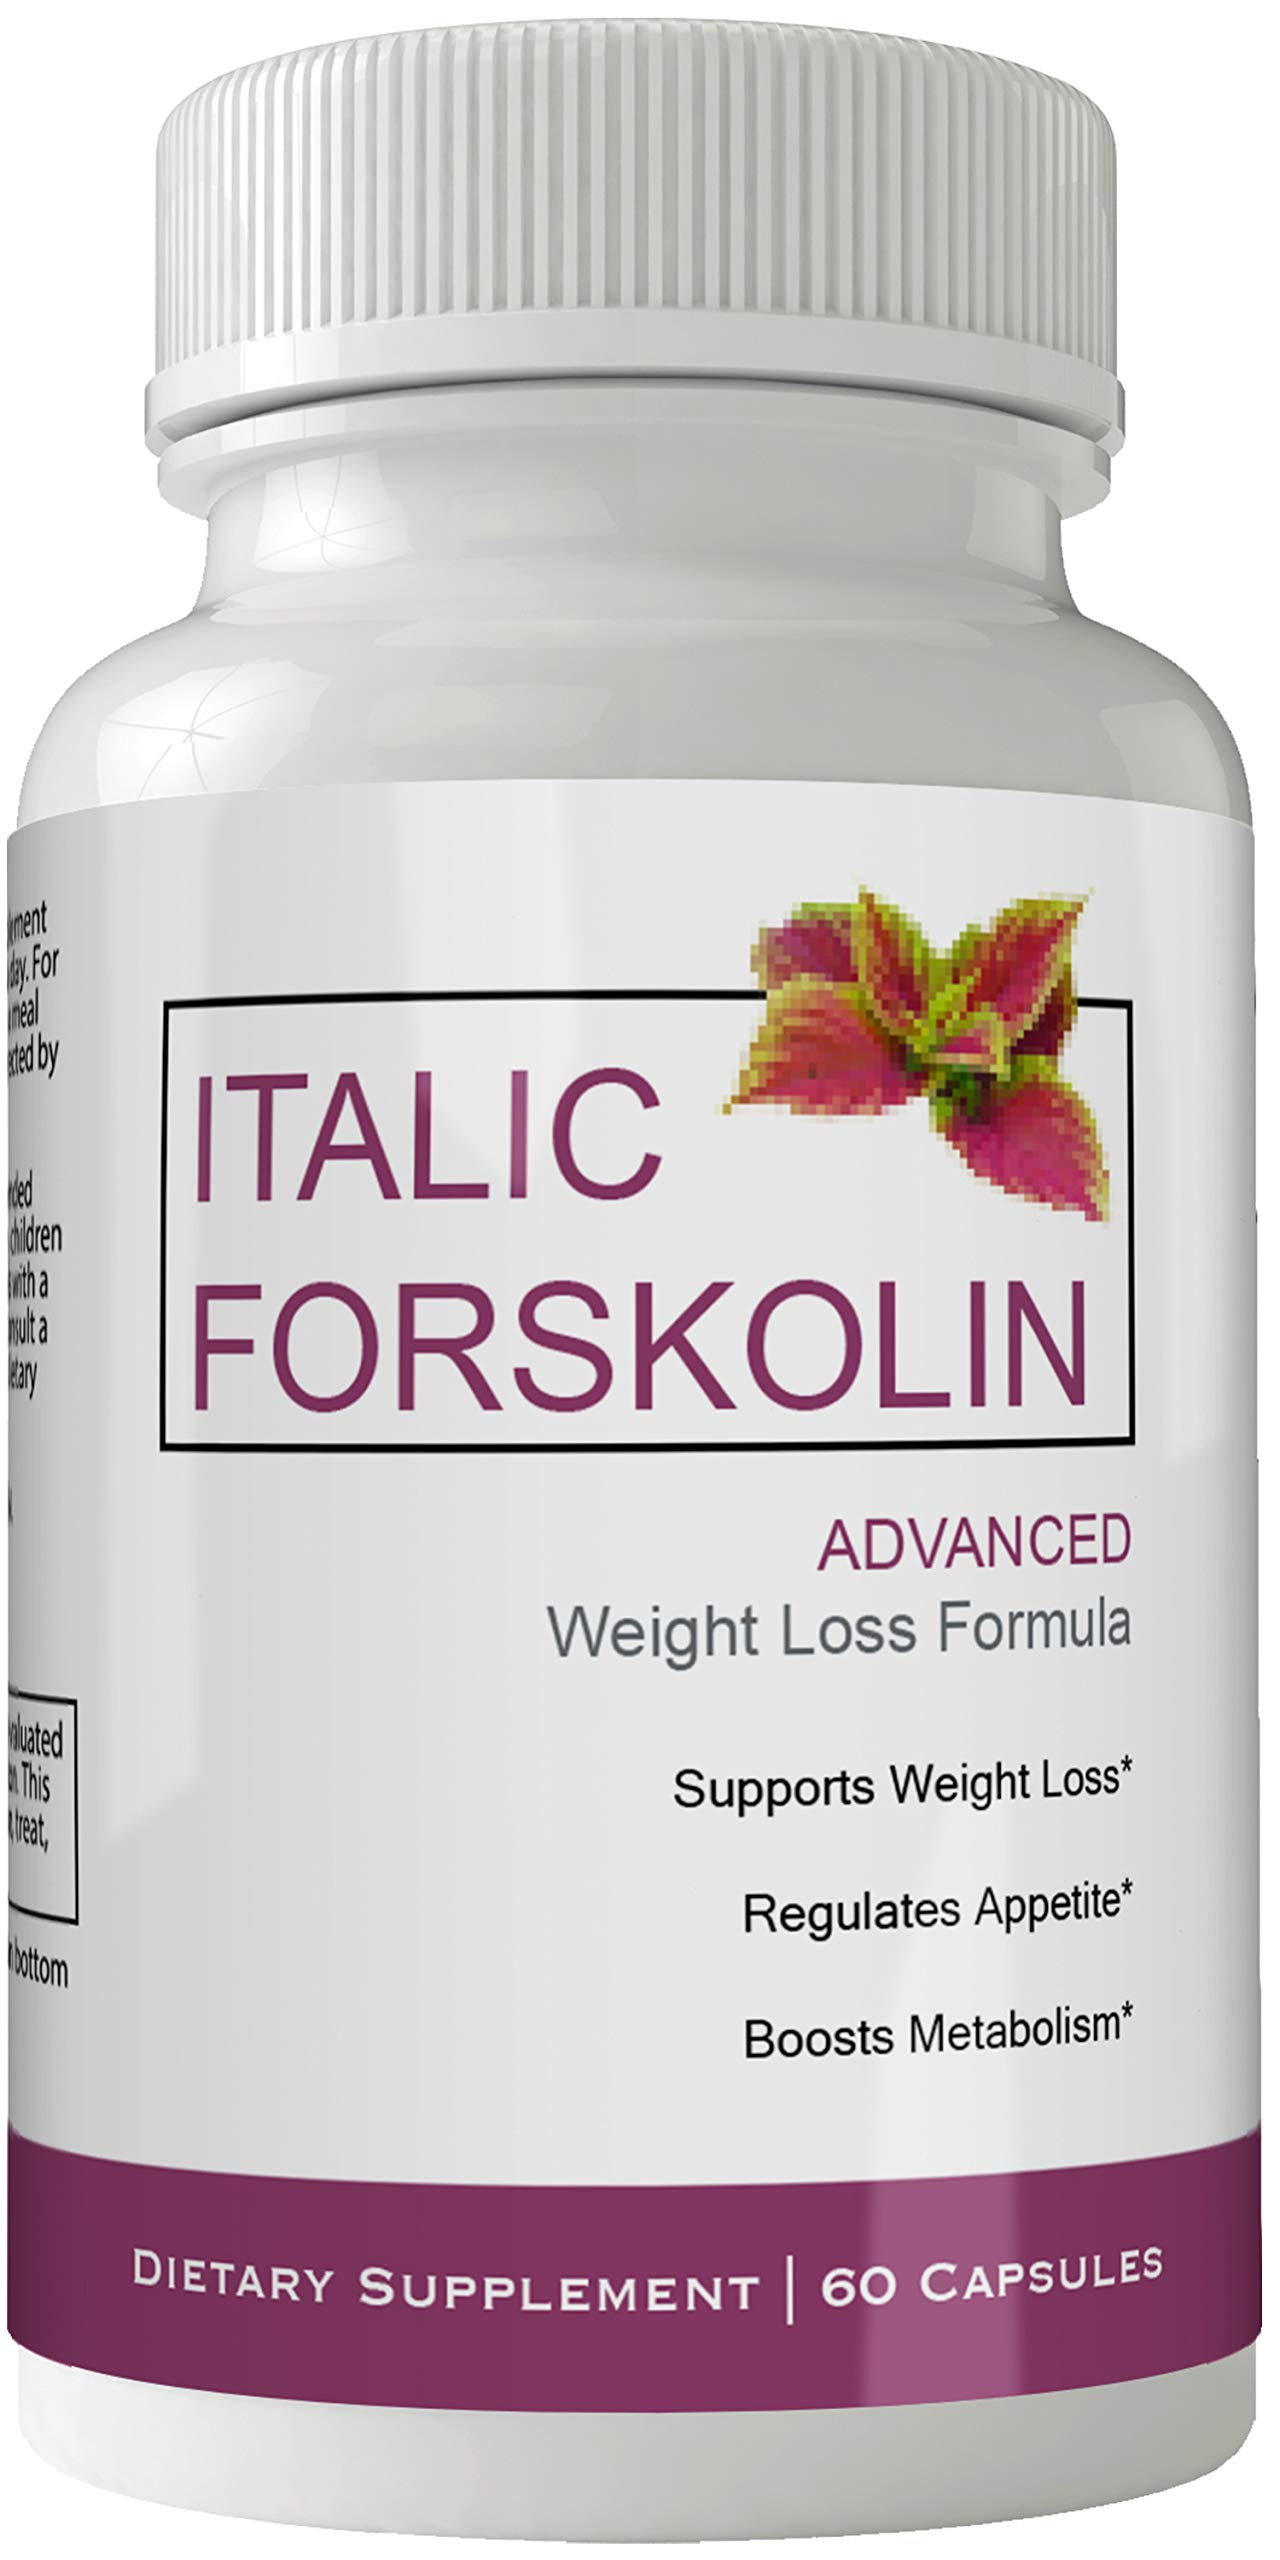 Italic Forskolin Supplement for Weight Loss Capsules with Natural High Quality Pure Forskolin Extract Diet Pills by nutra4health LLC